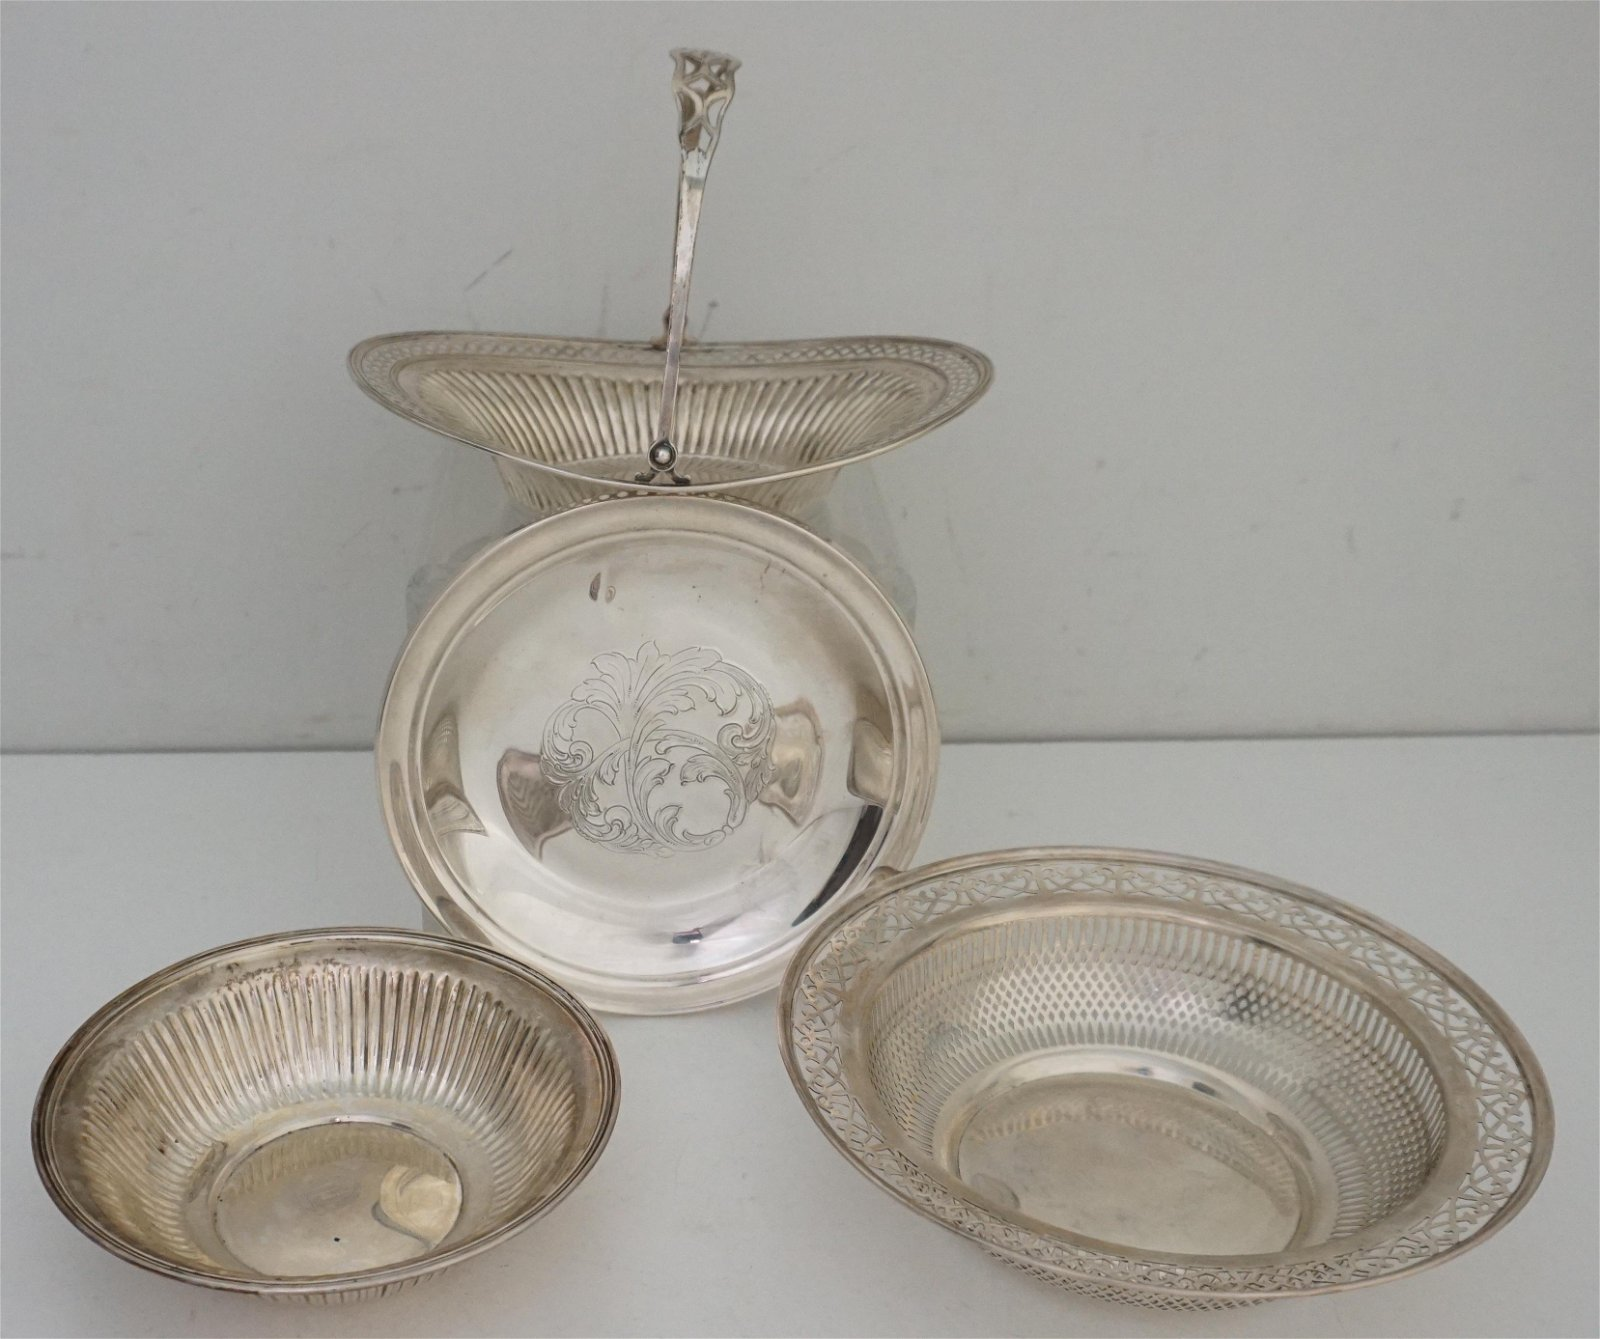 4 AMERICAN STERLING SILVER BOWLS